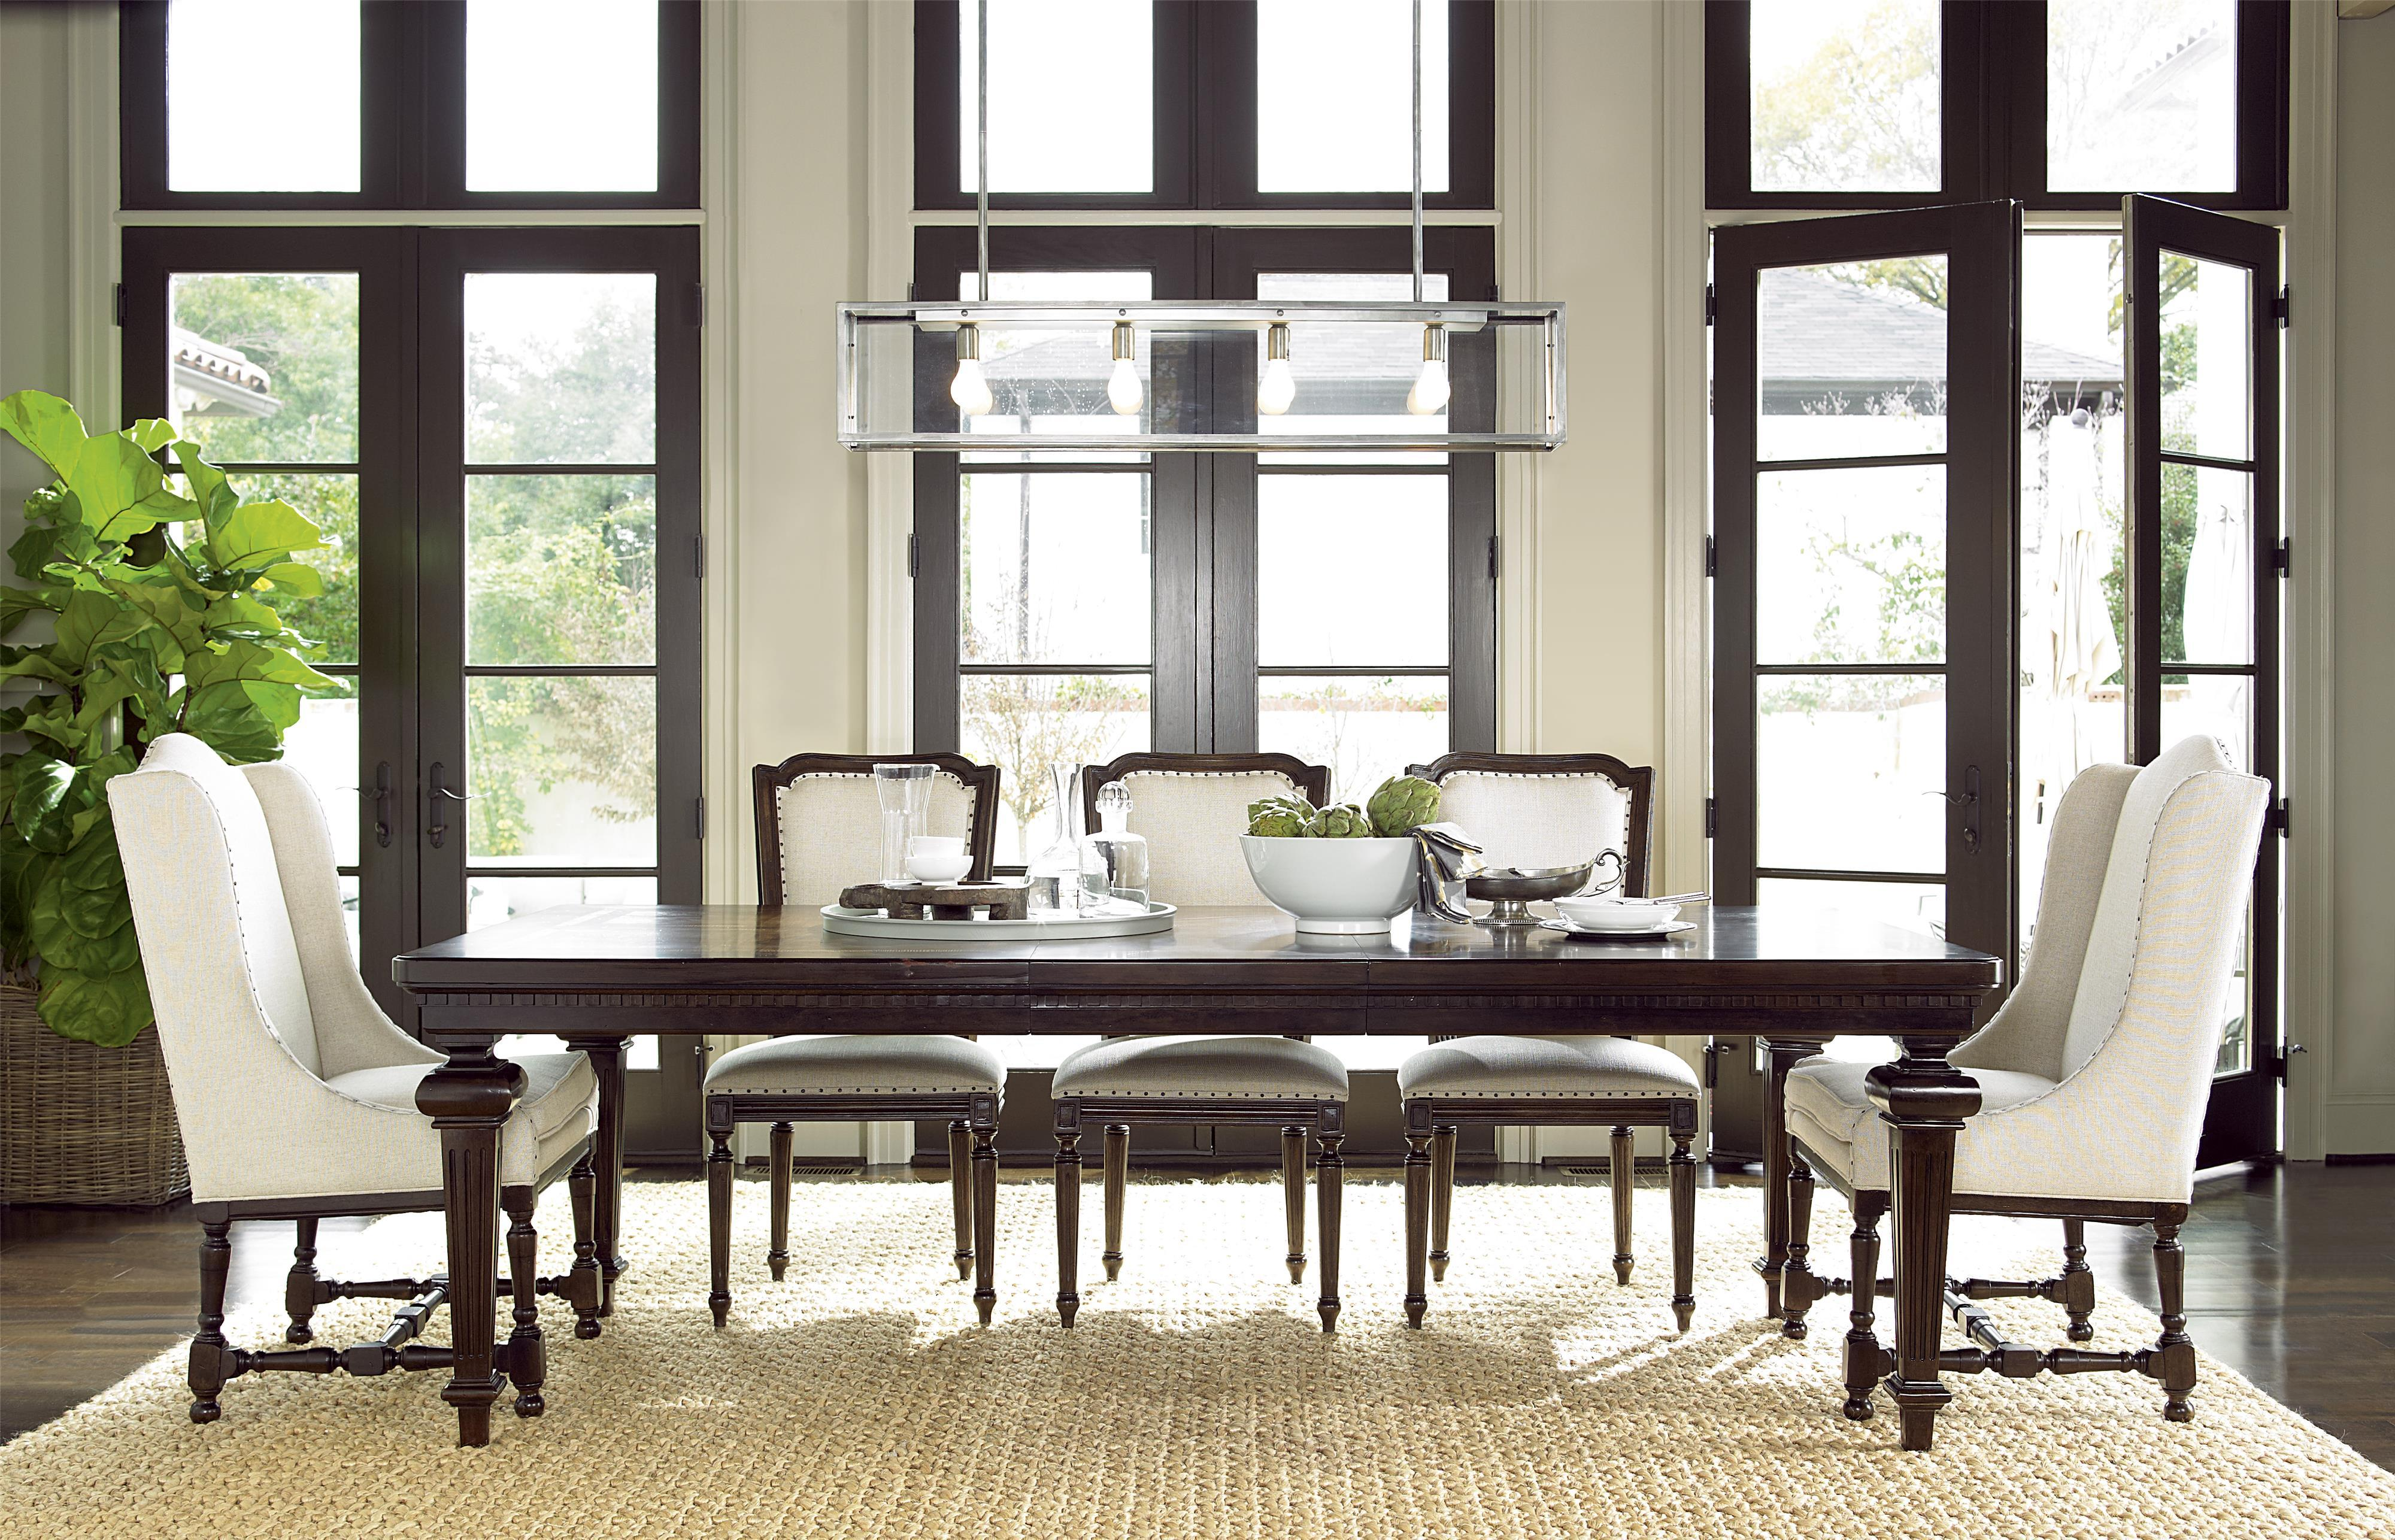 Morris Home Furnishings Providence Providence 5-Piece Dining Set - Item Number: 358244211